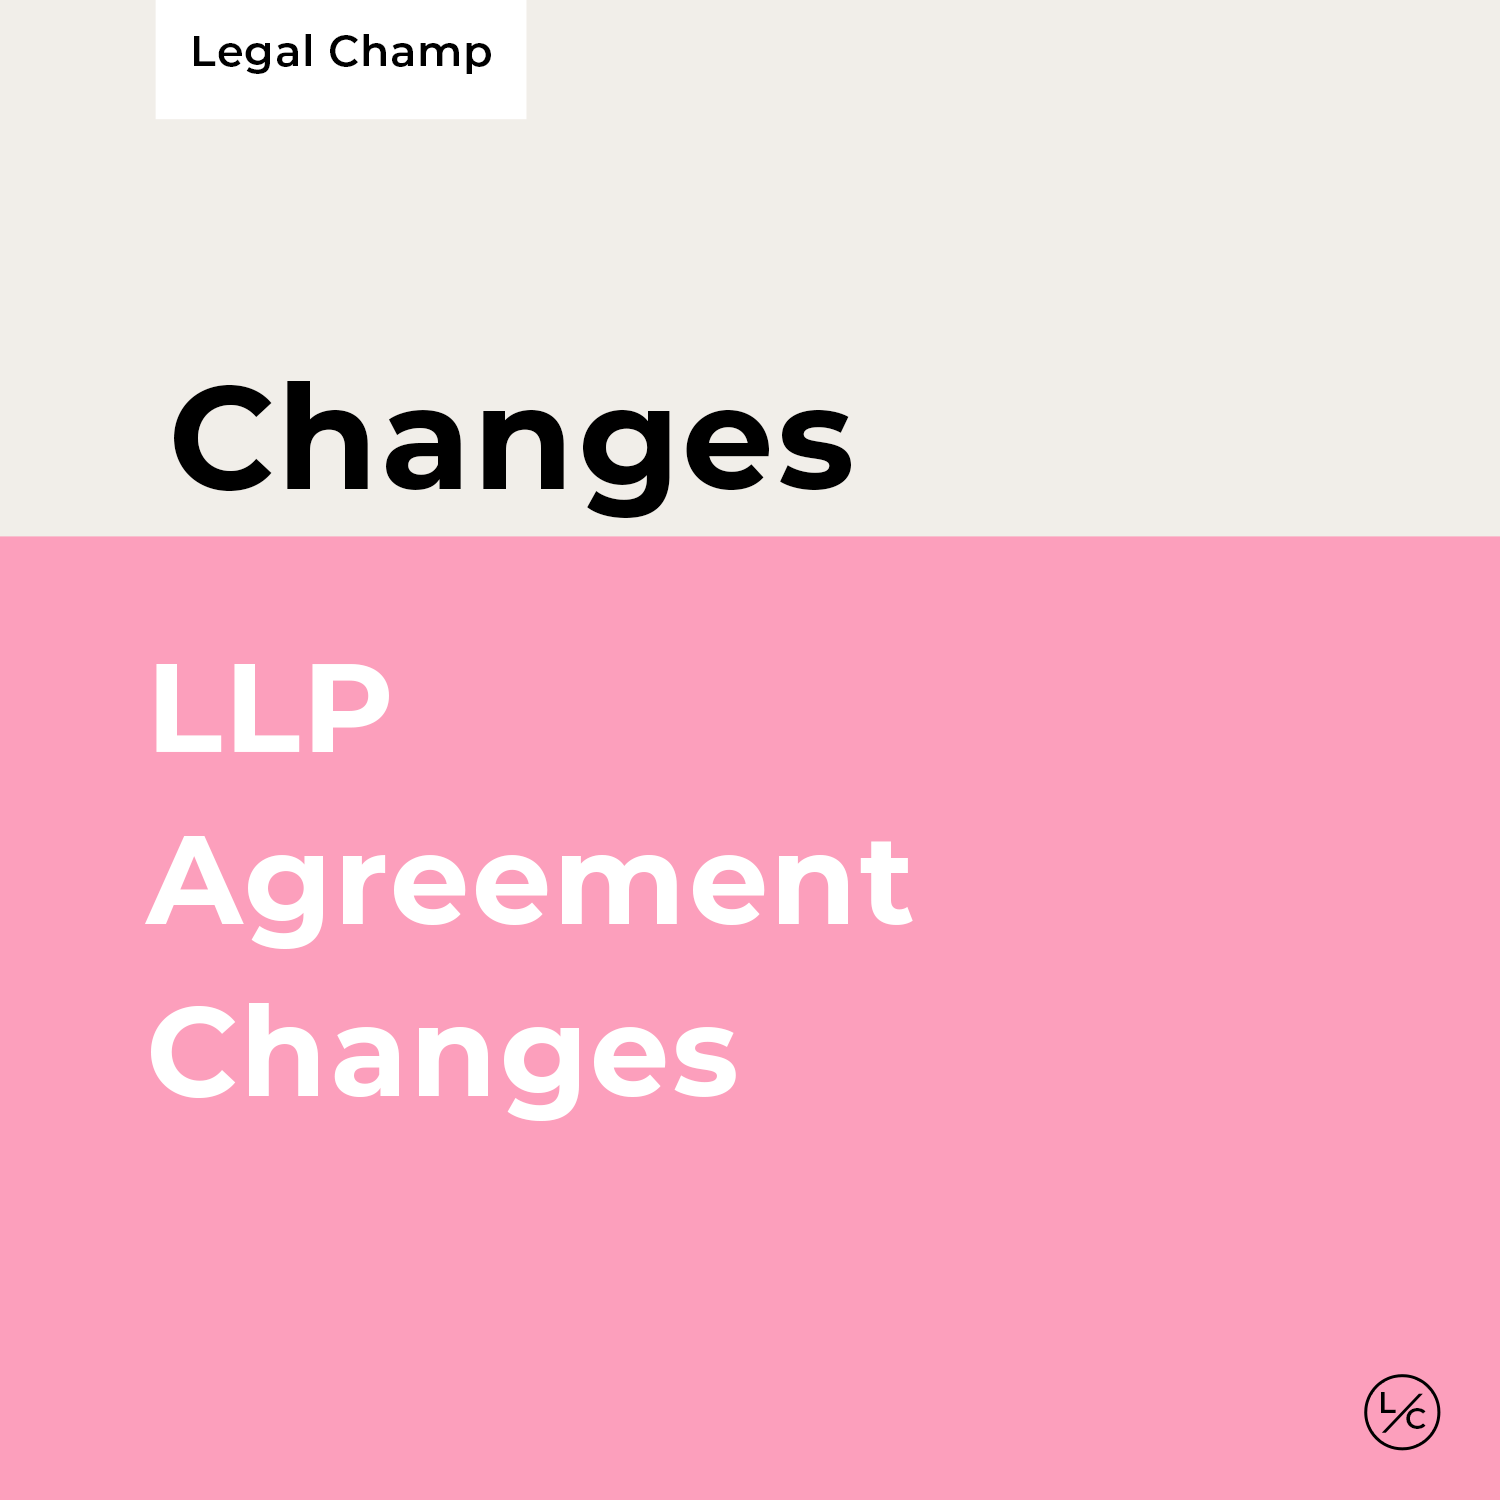 LLP Agreement Changes